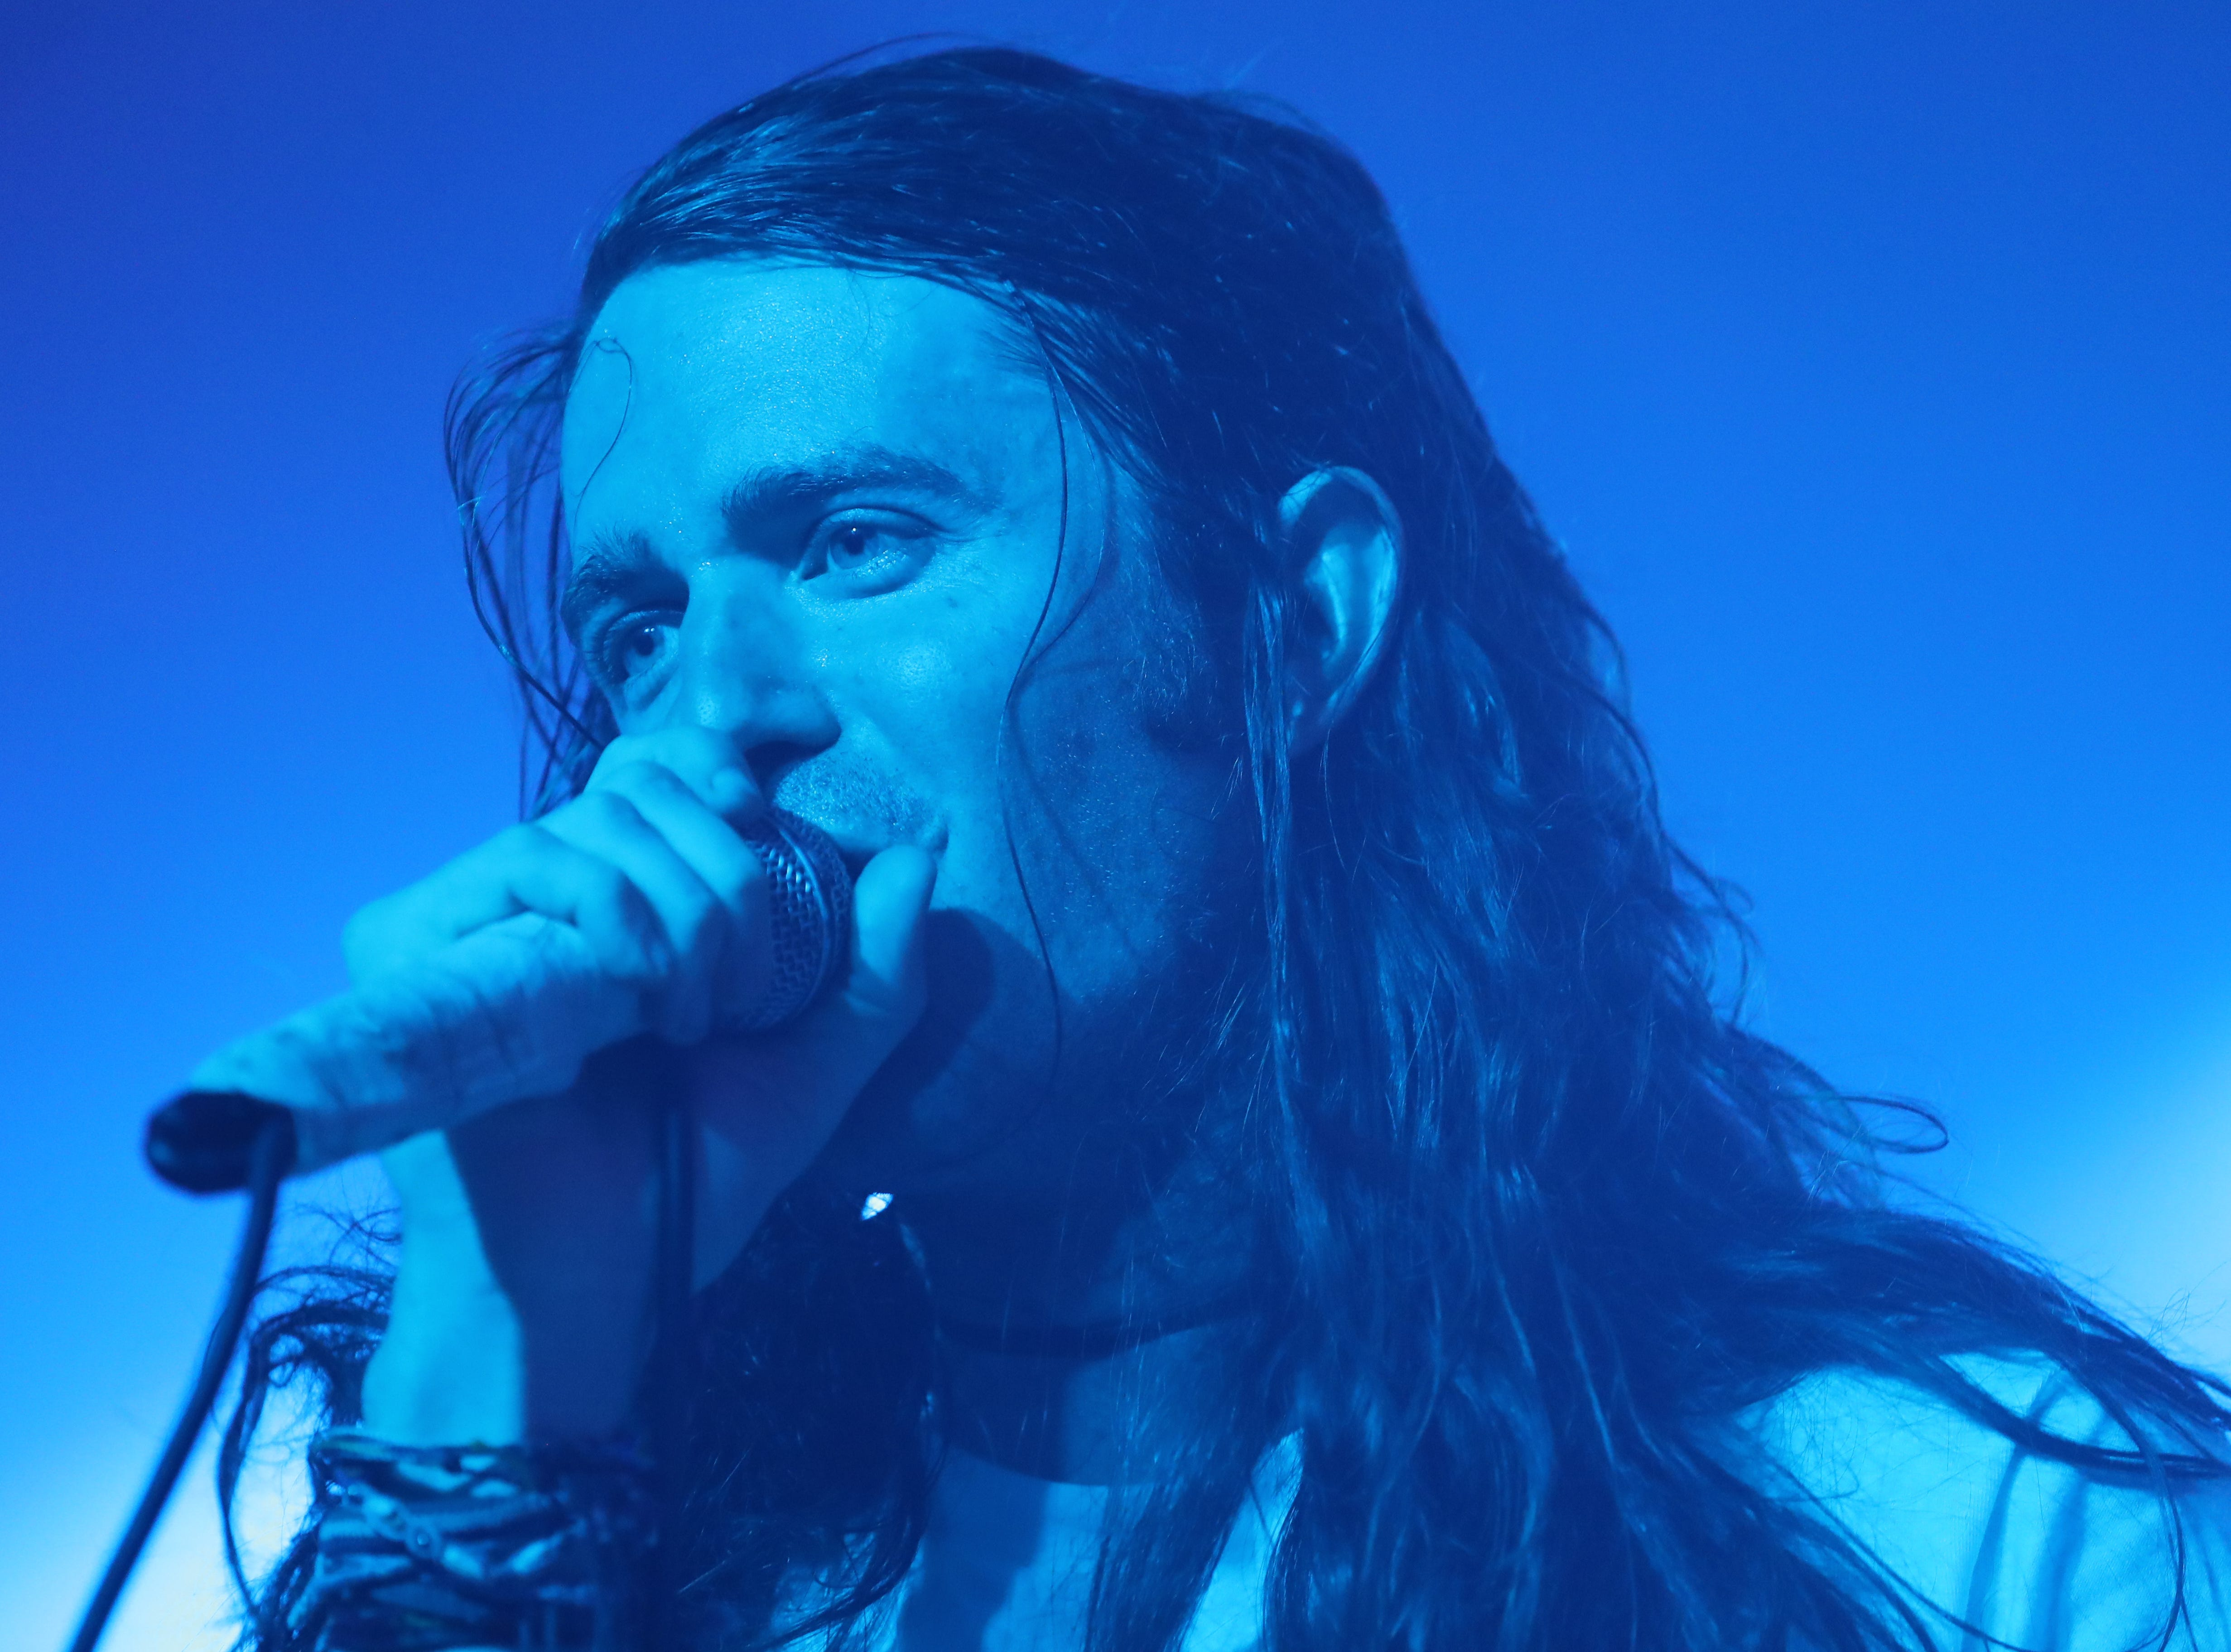 Mayday Parade perform at The Moon in Tallahassee, Fla. Tuesday, Oct. 2, 2018.